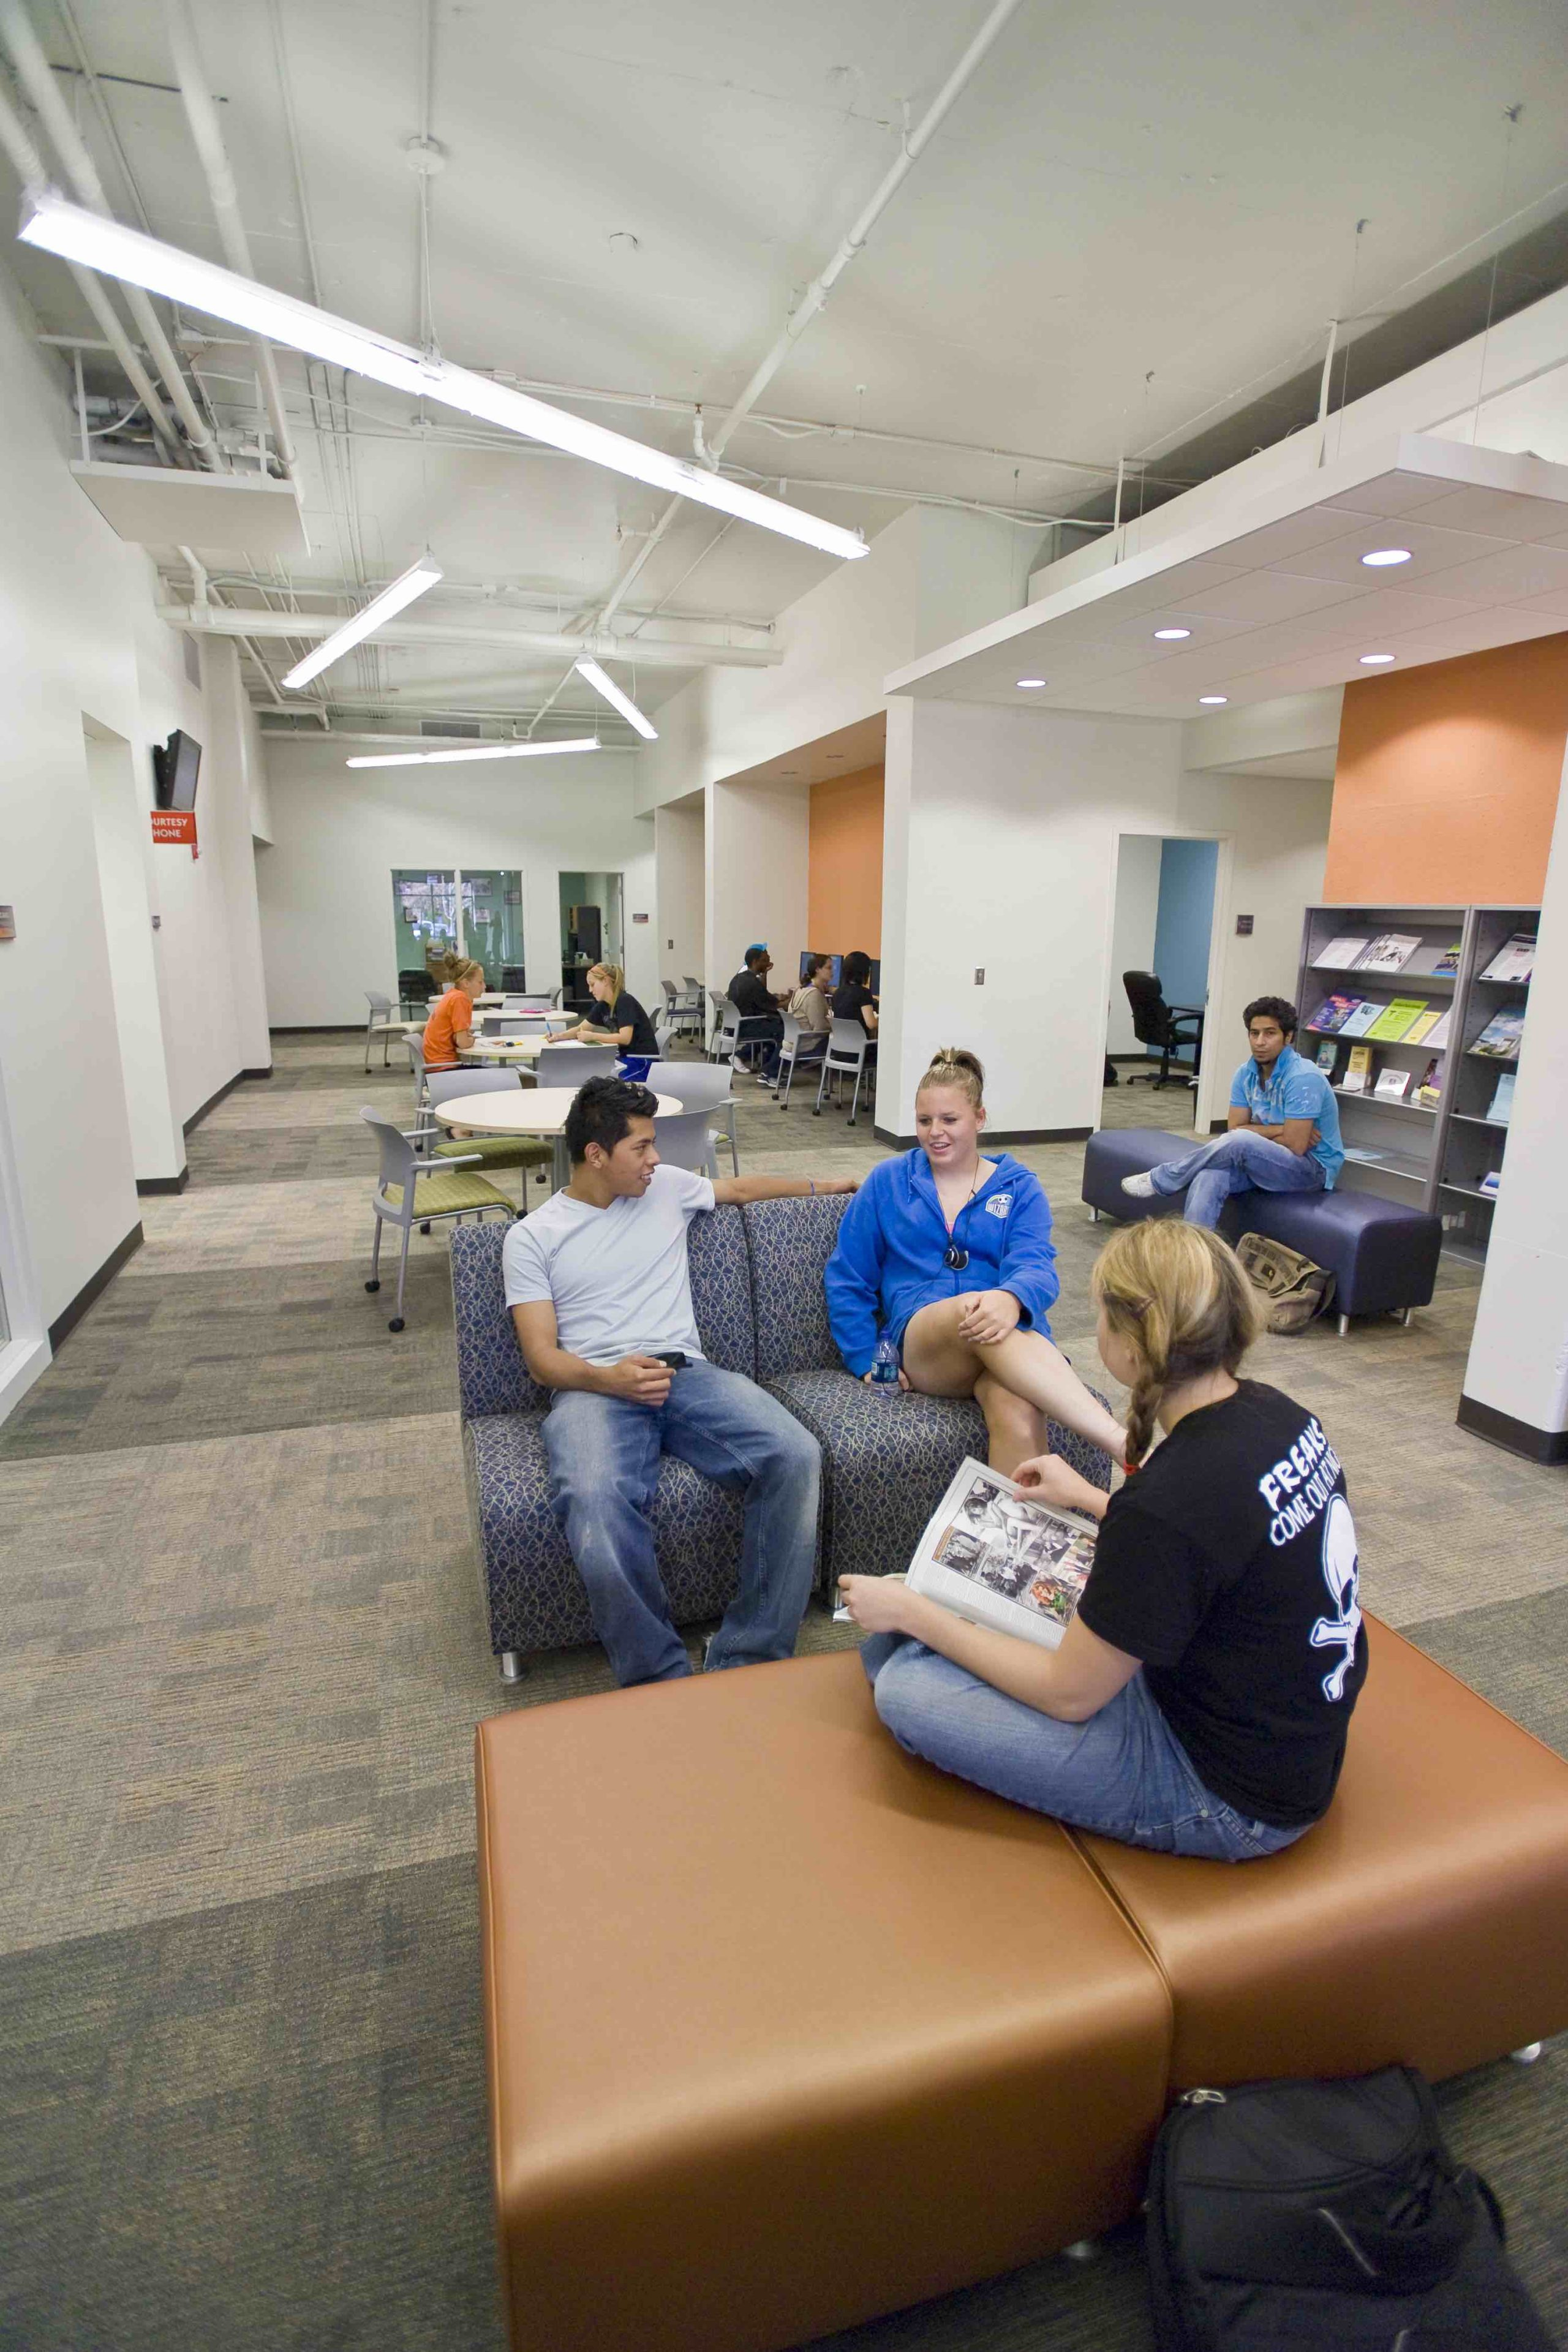 Students lounging in Hodes Center